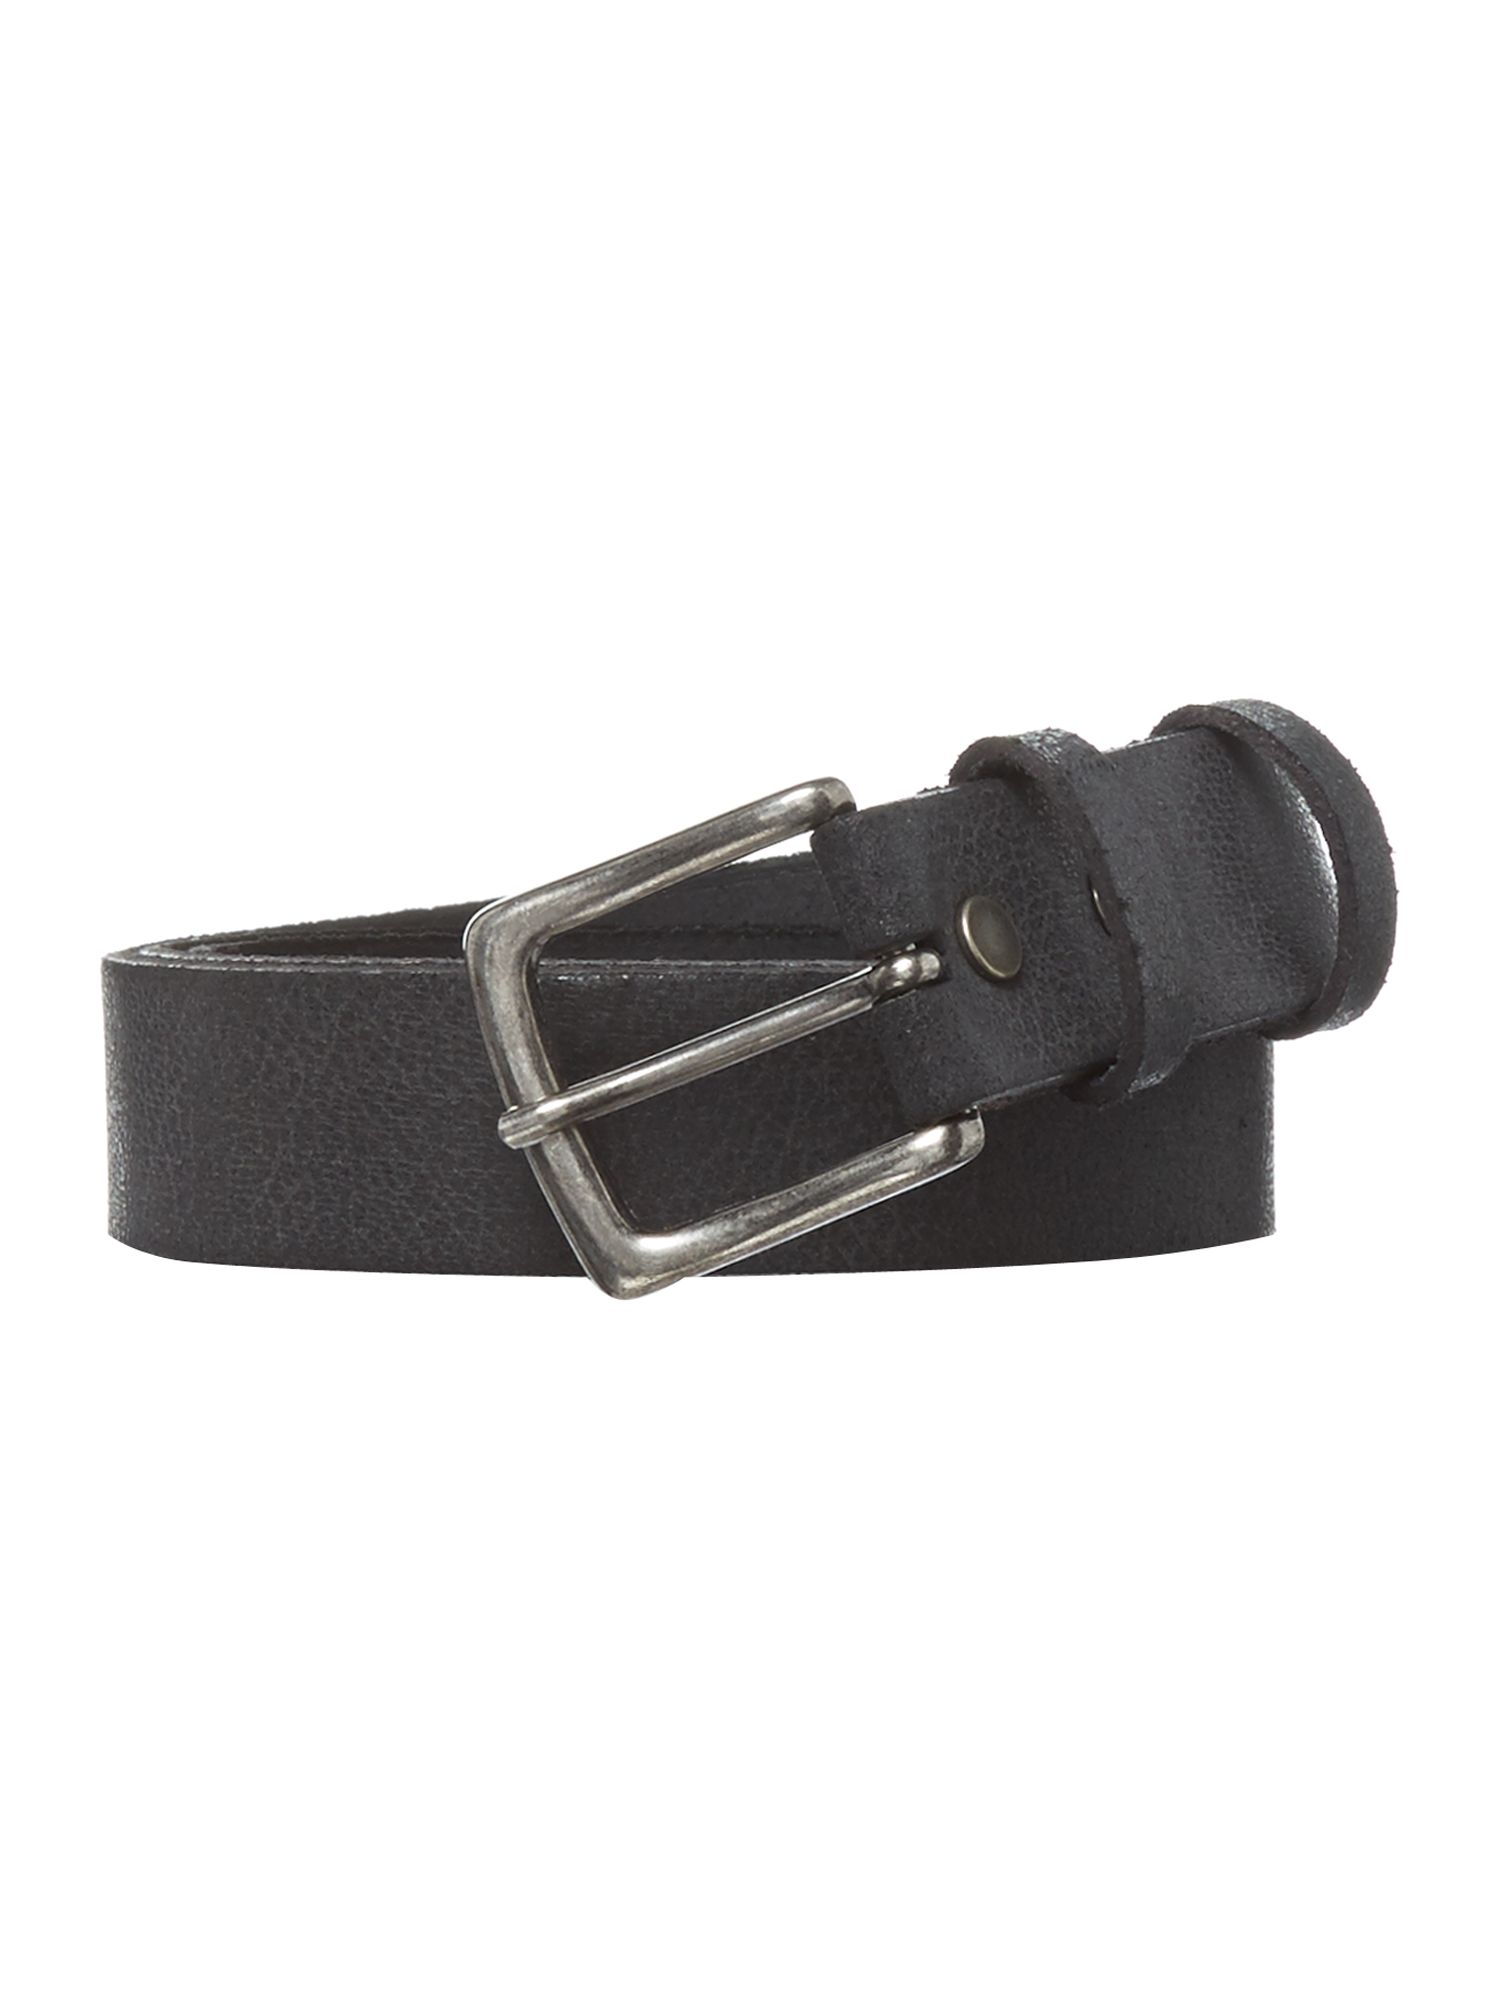 Leather distressed belt